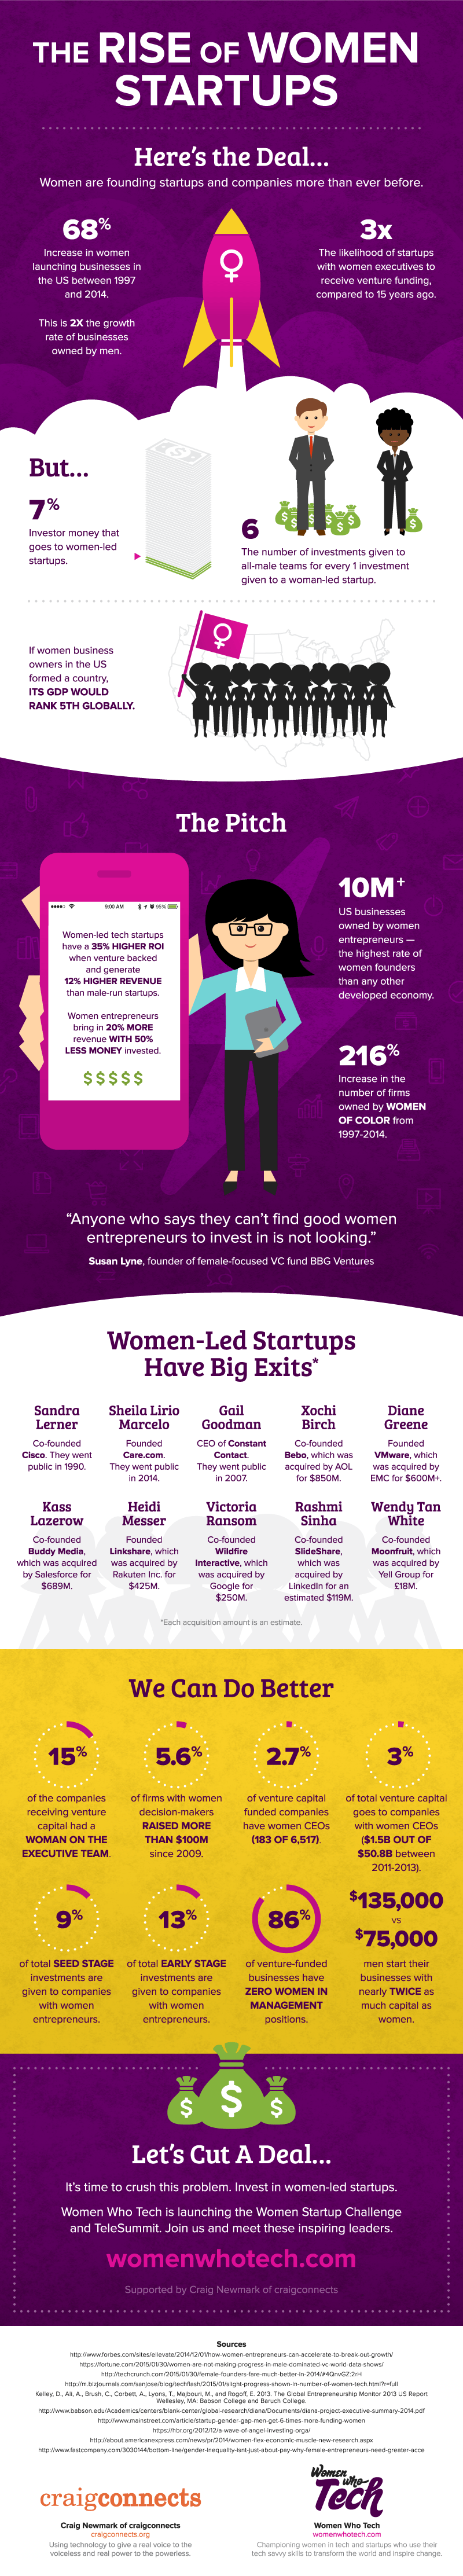 The Rise of Women Startups